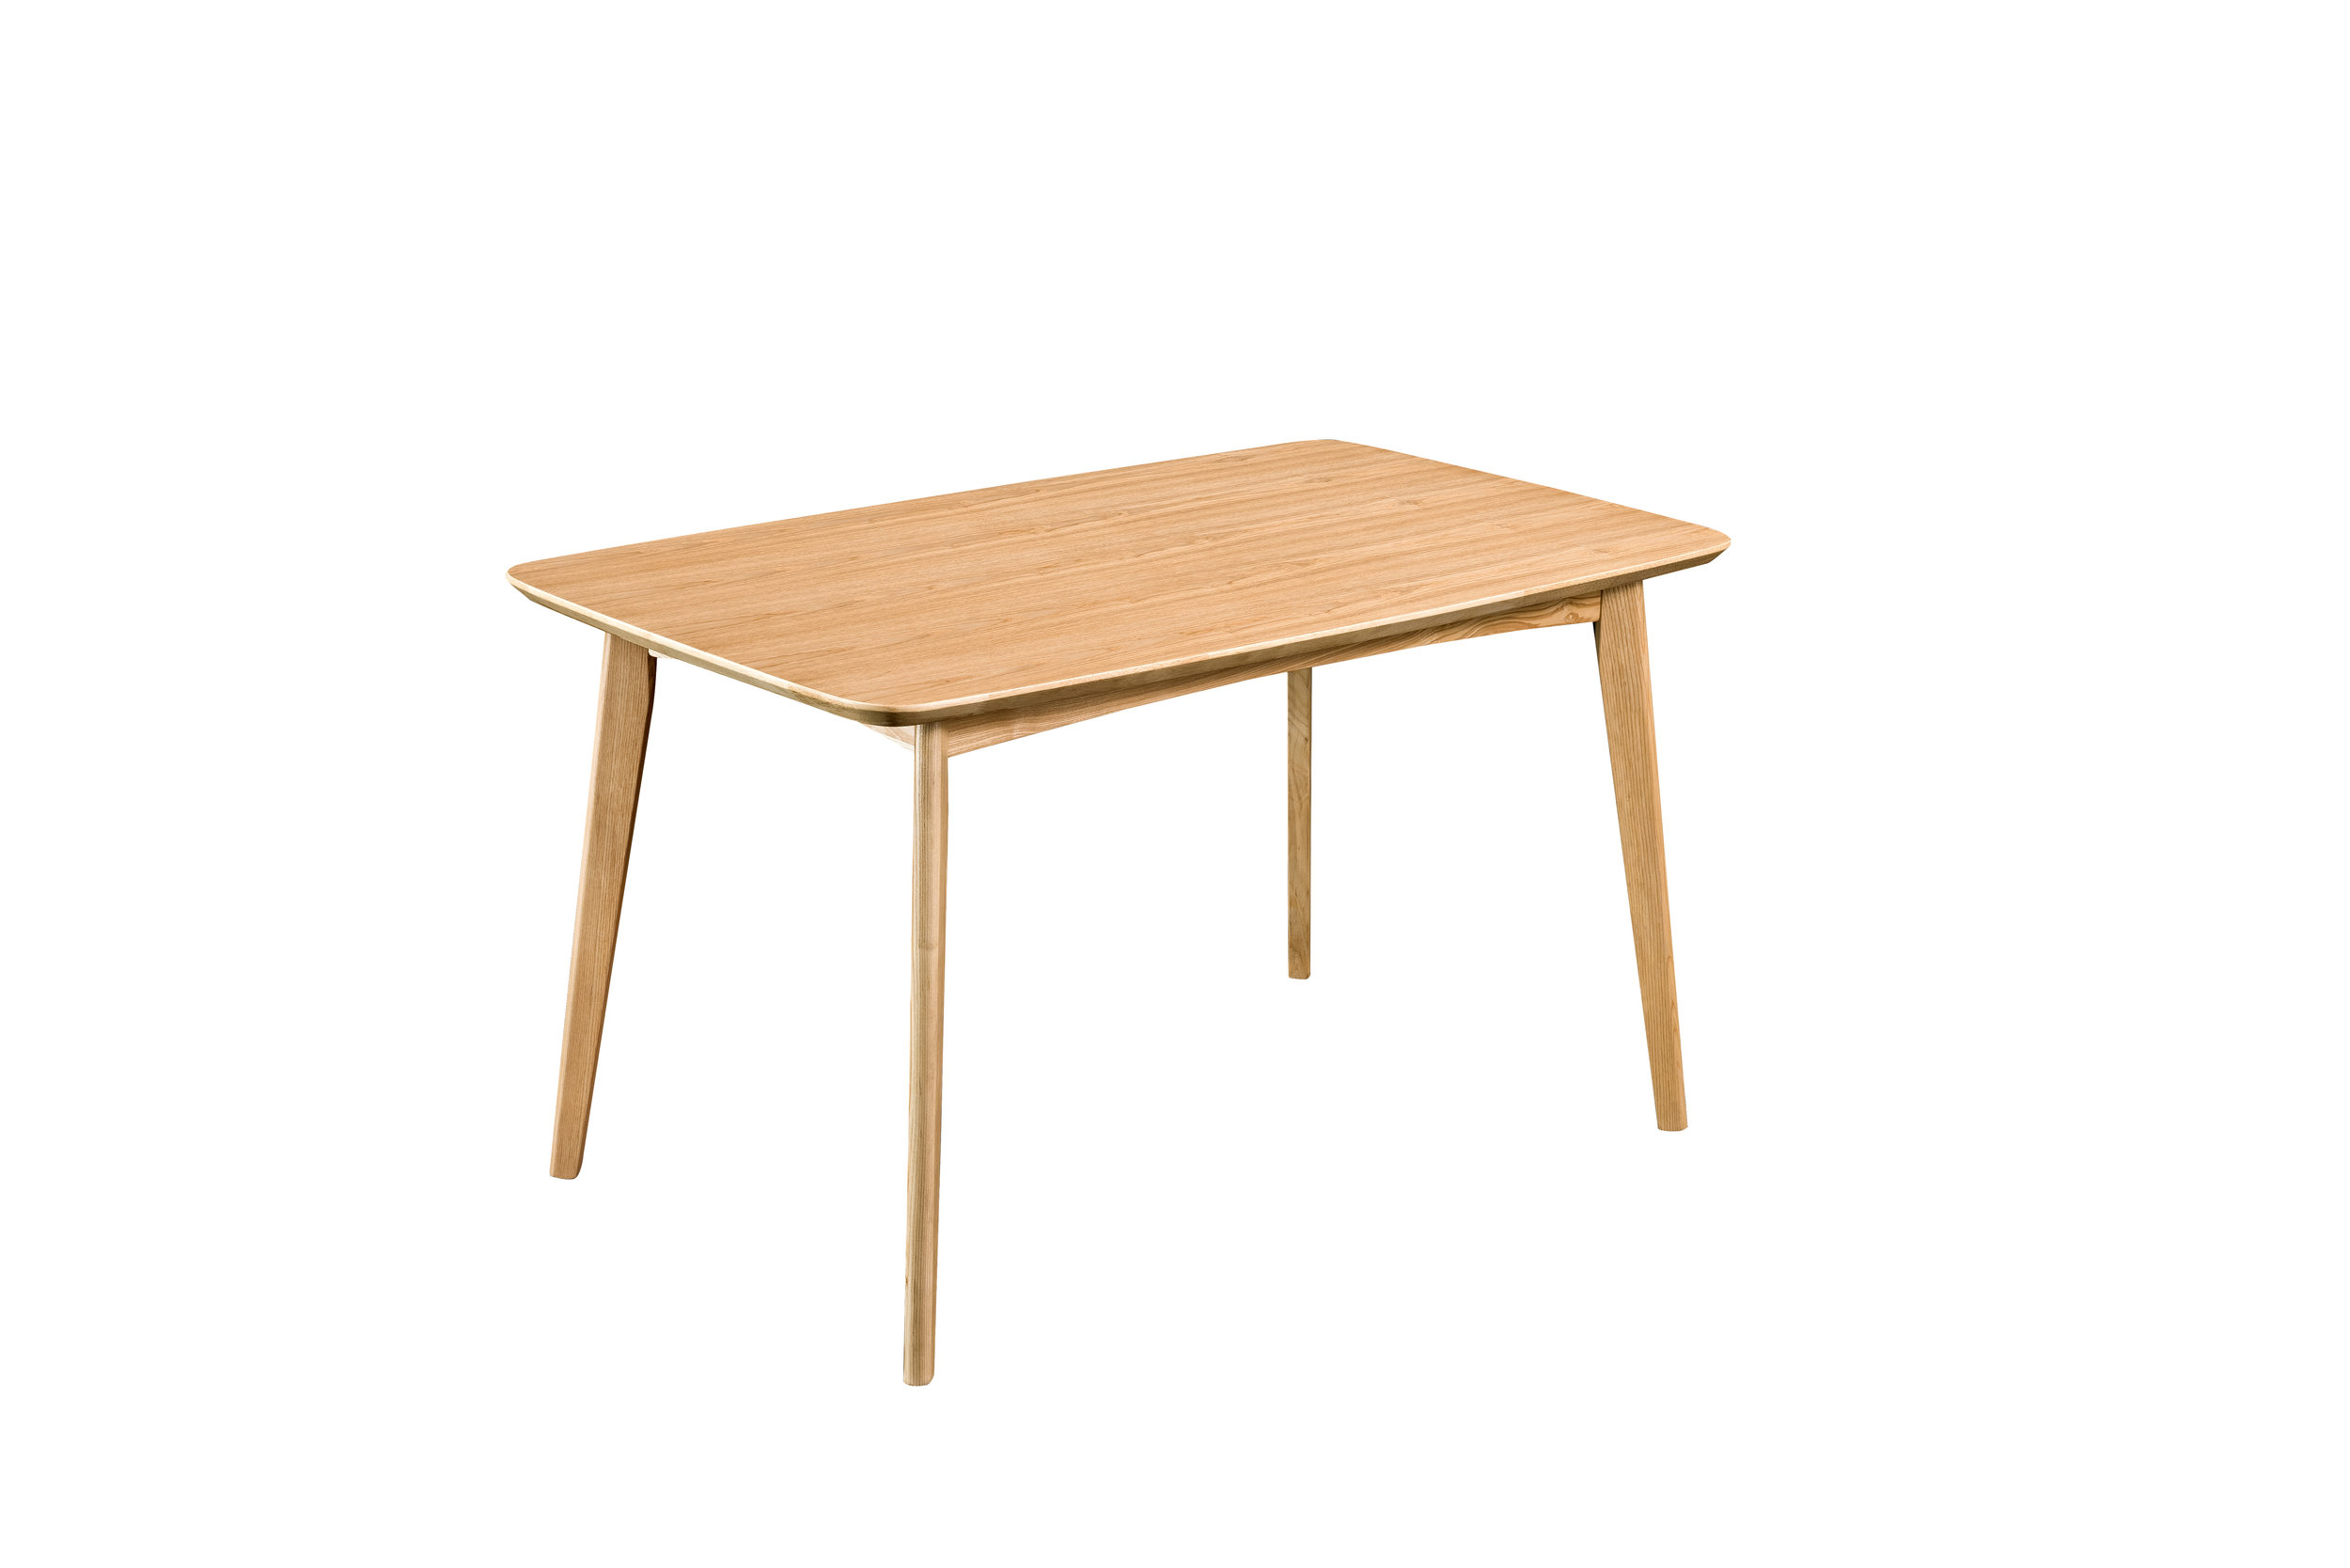 Scandin Dining Table $499